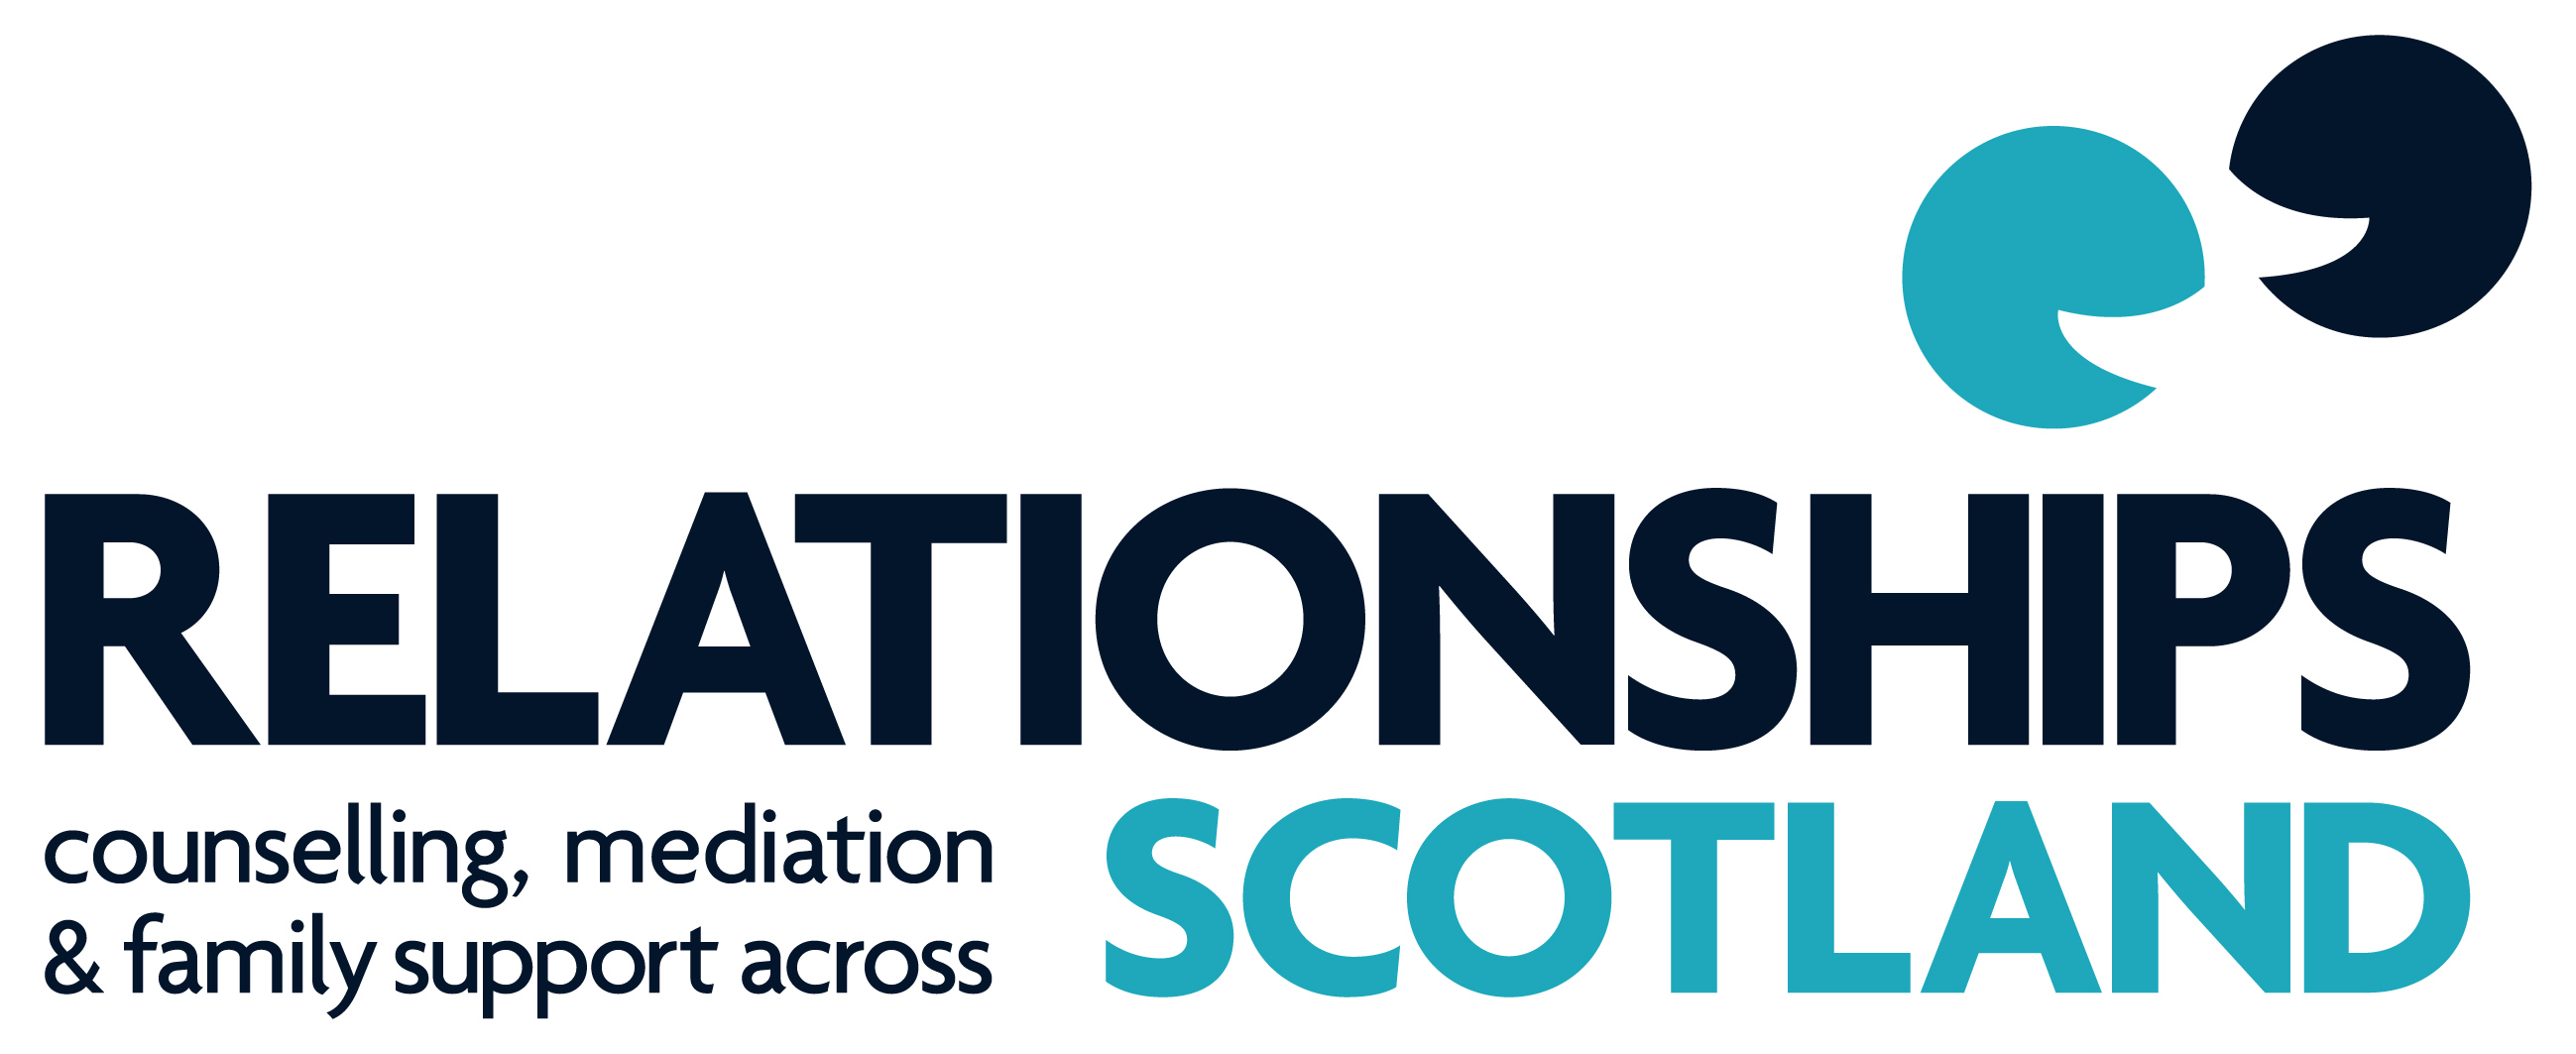 I'm now Head of Communications at Relationships Scotland